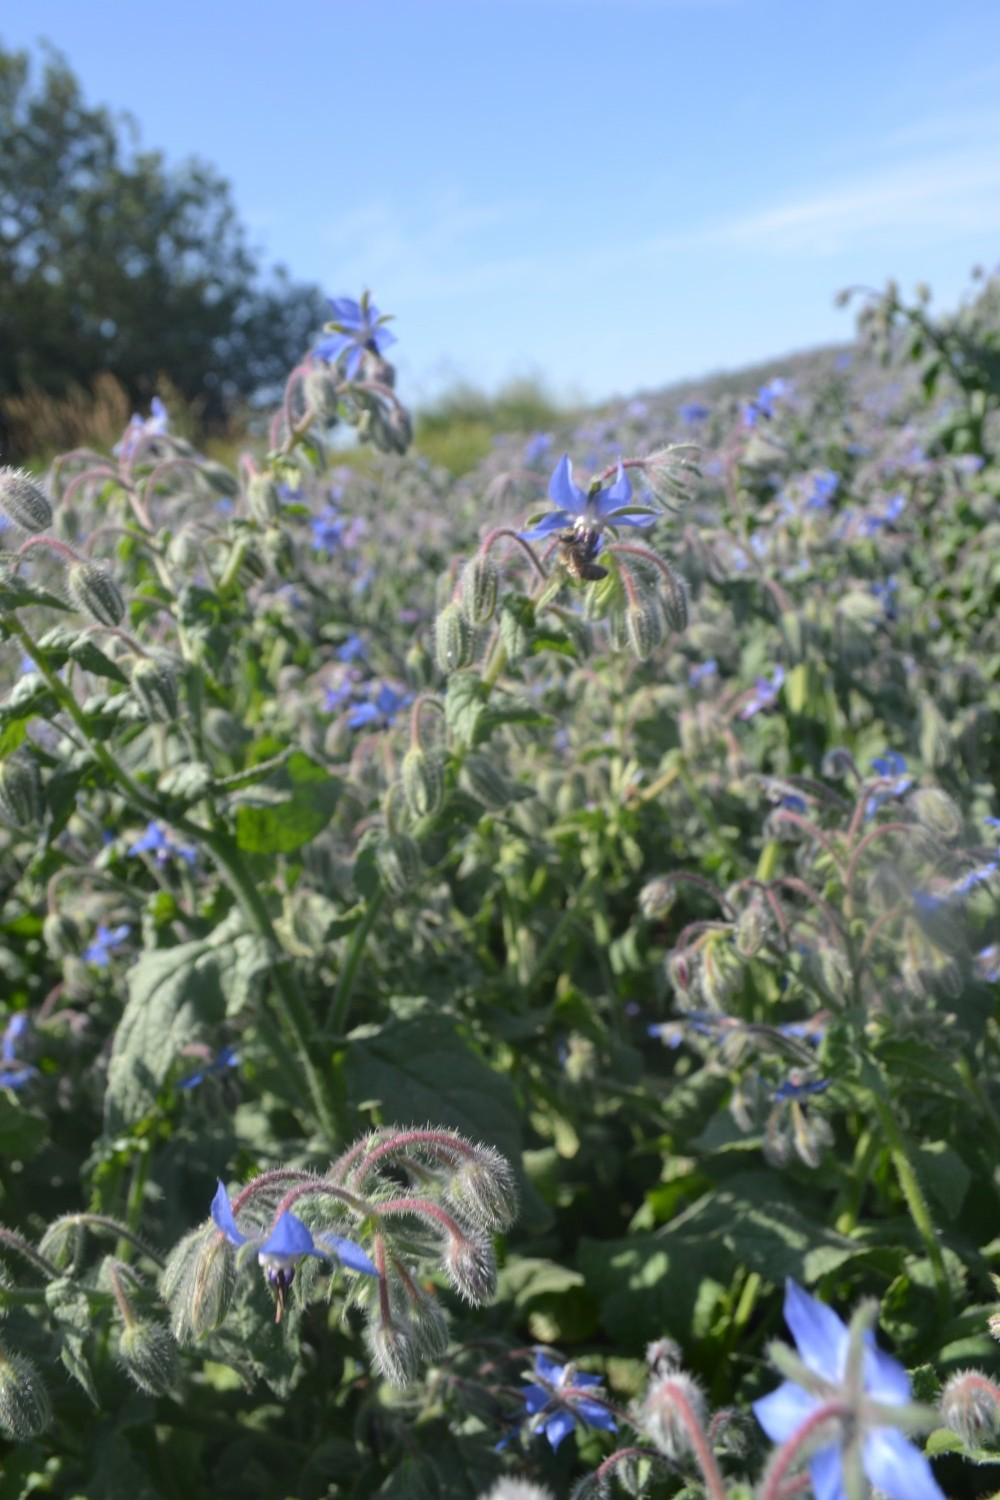 Field of borage flowers